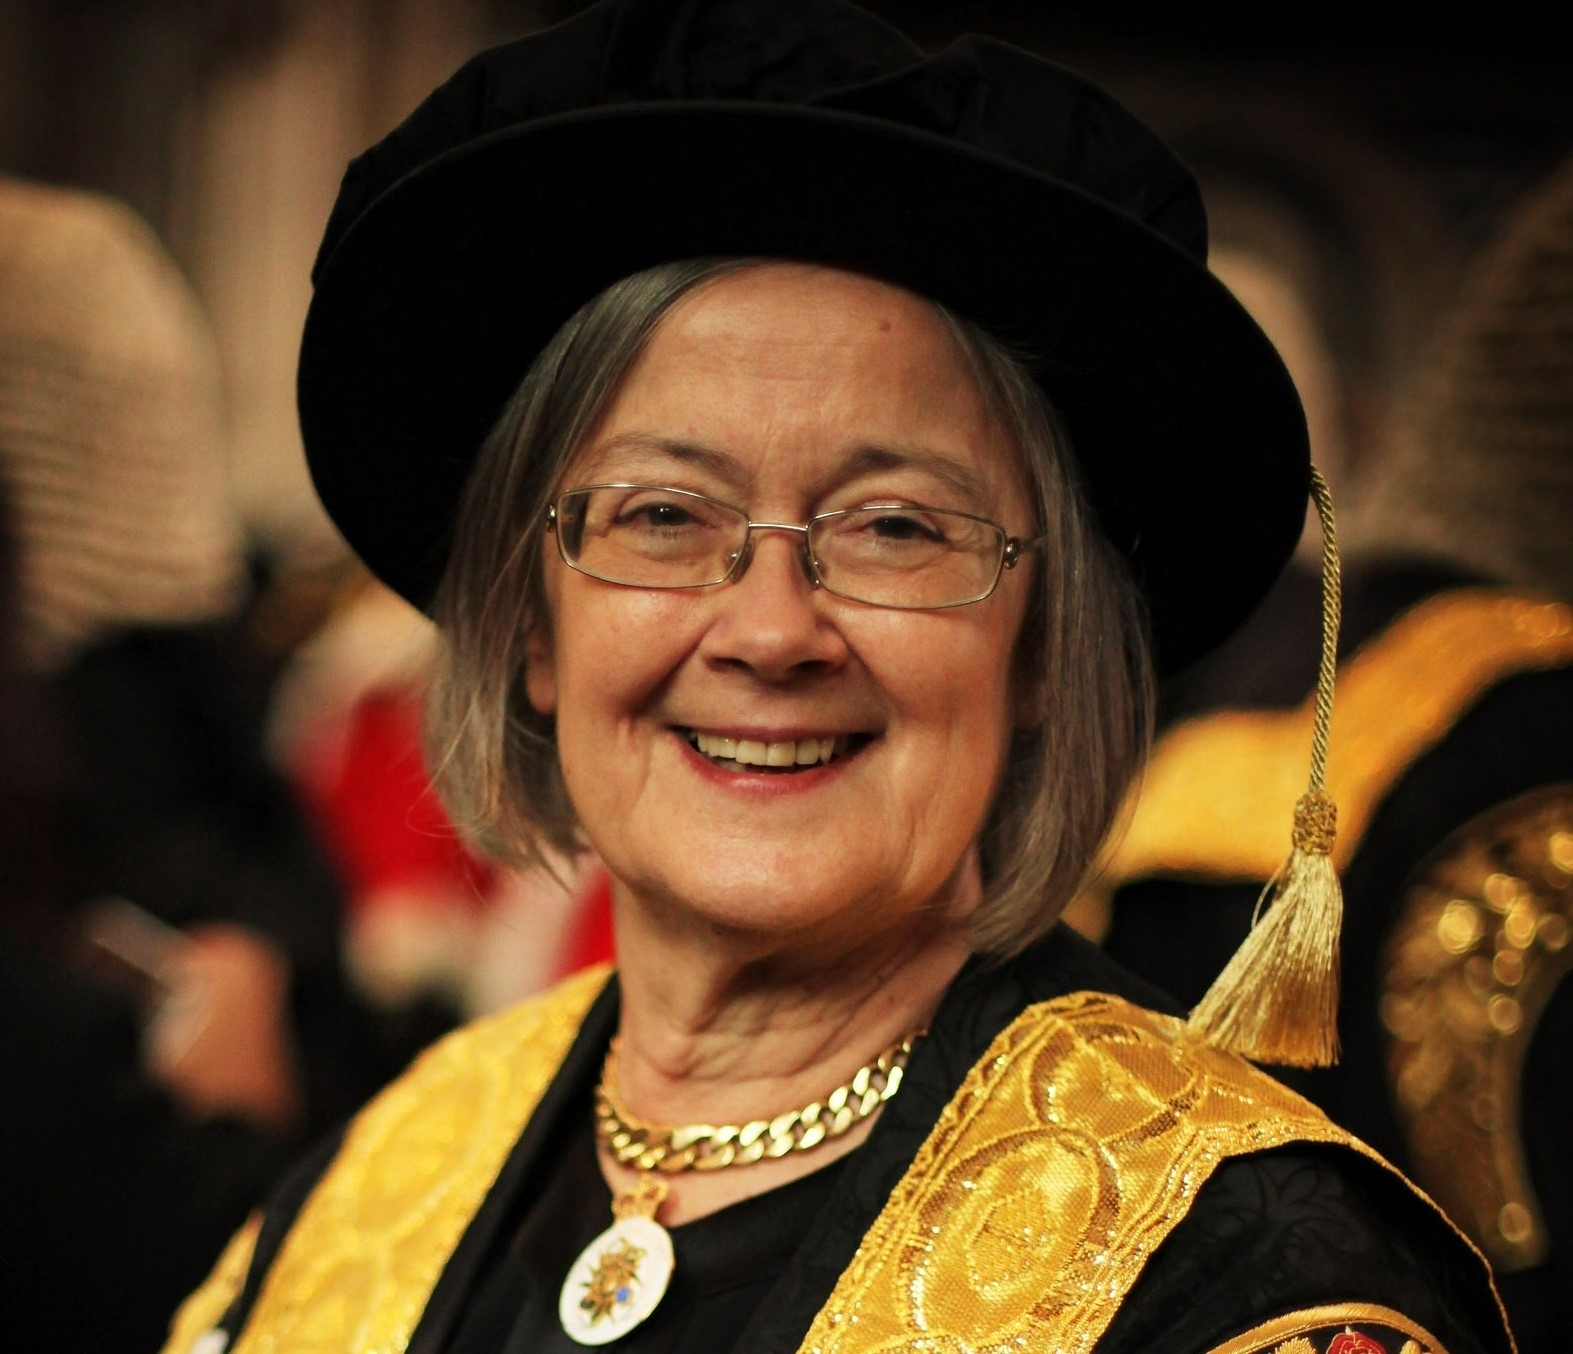 Lady Hale becomes first woman president of UK Supreme Court